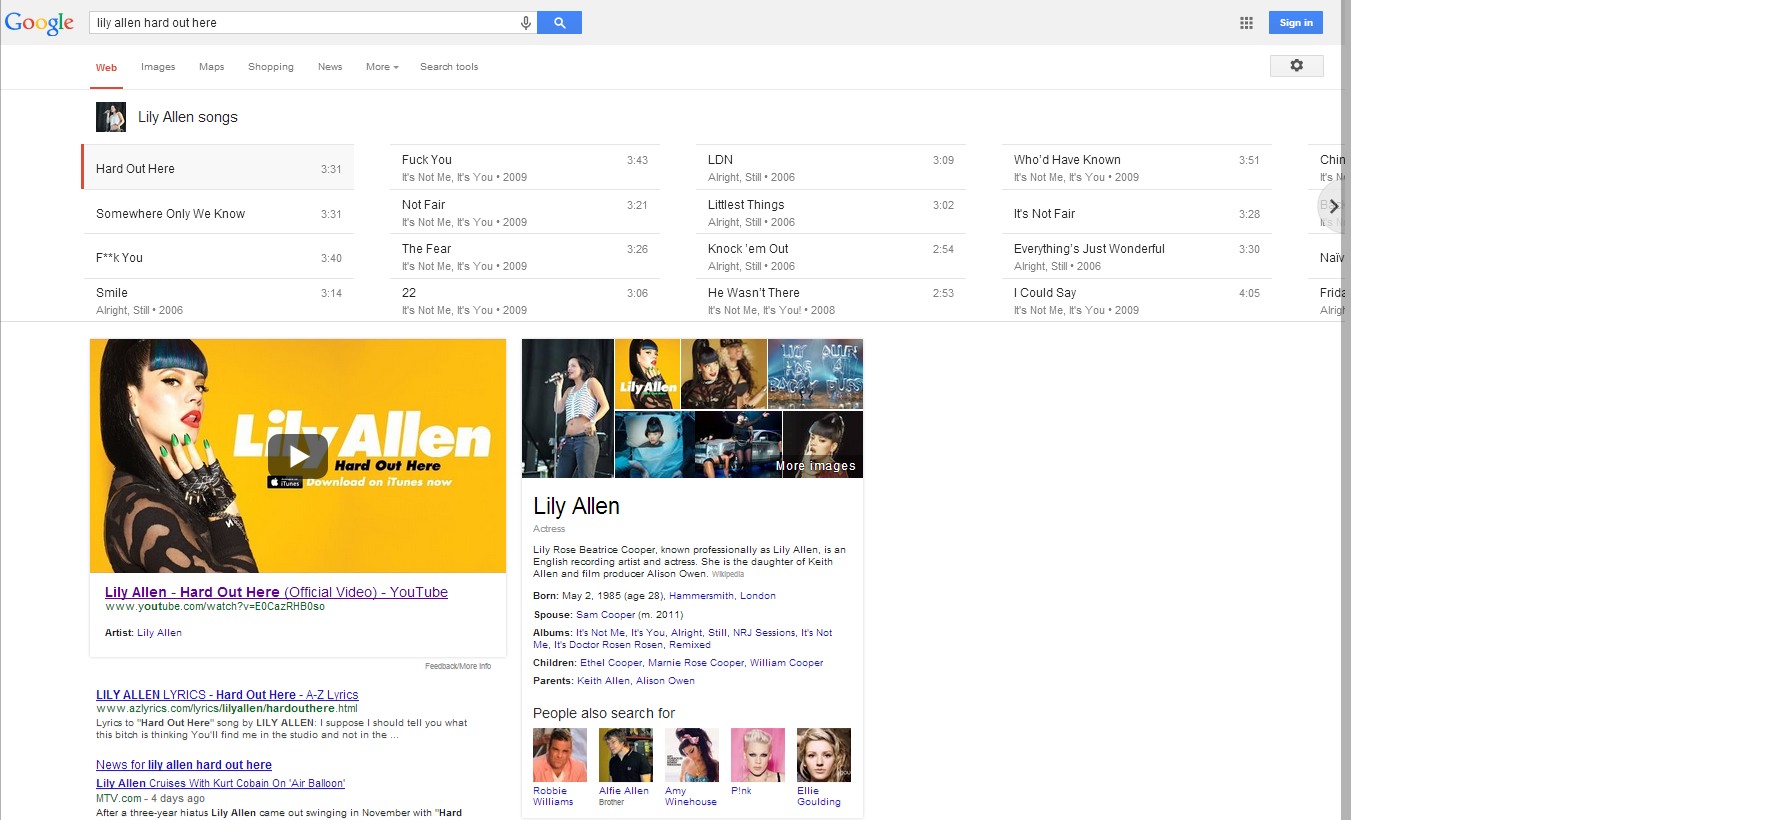 lily allen hard out here google search results semantic search